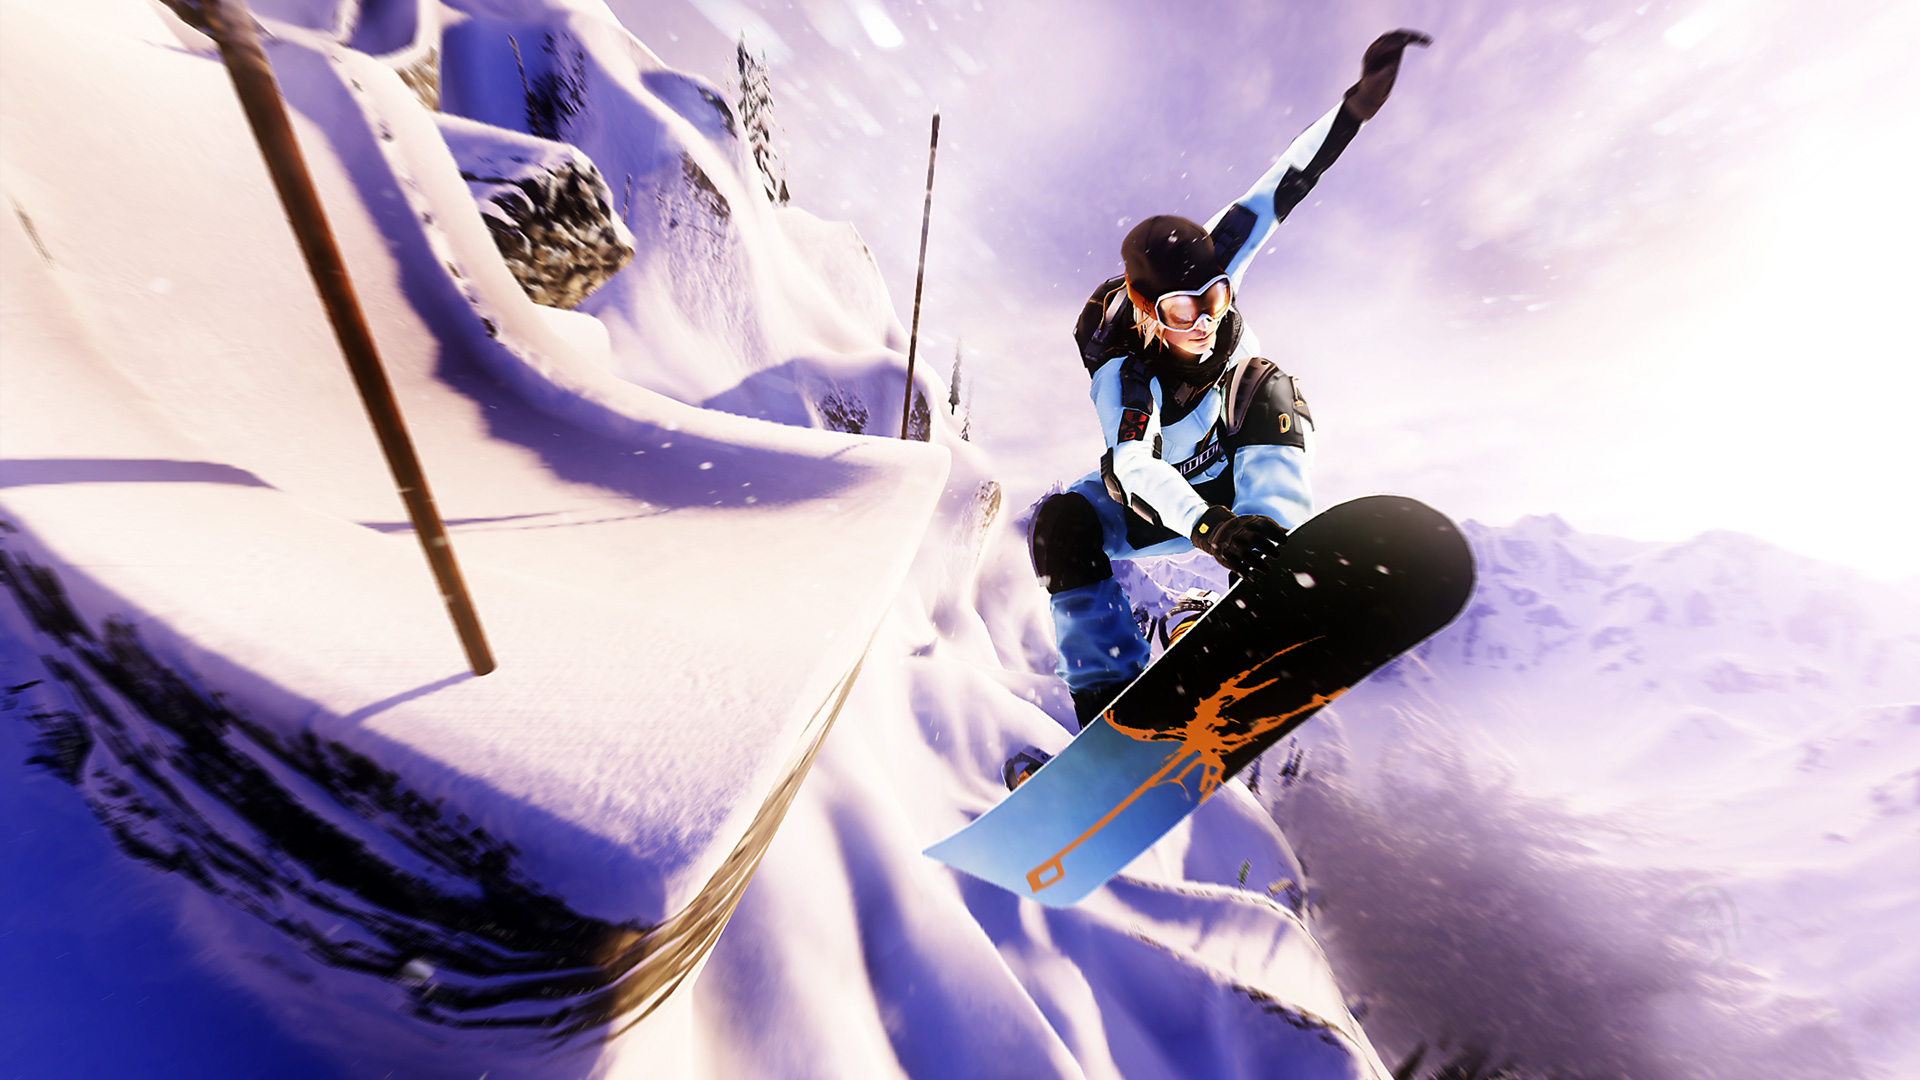 SSX Wallpaper in 1920x1080